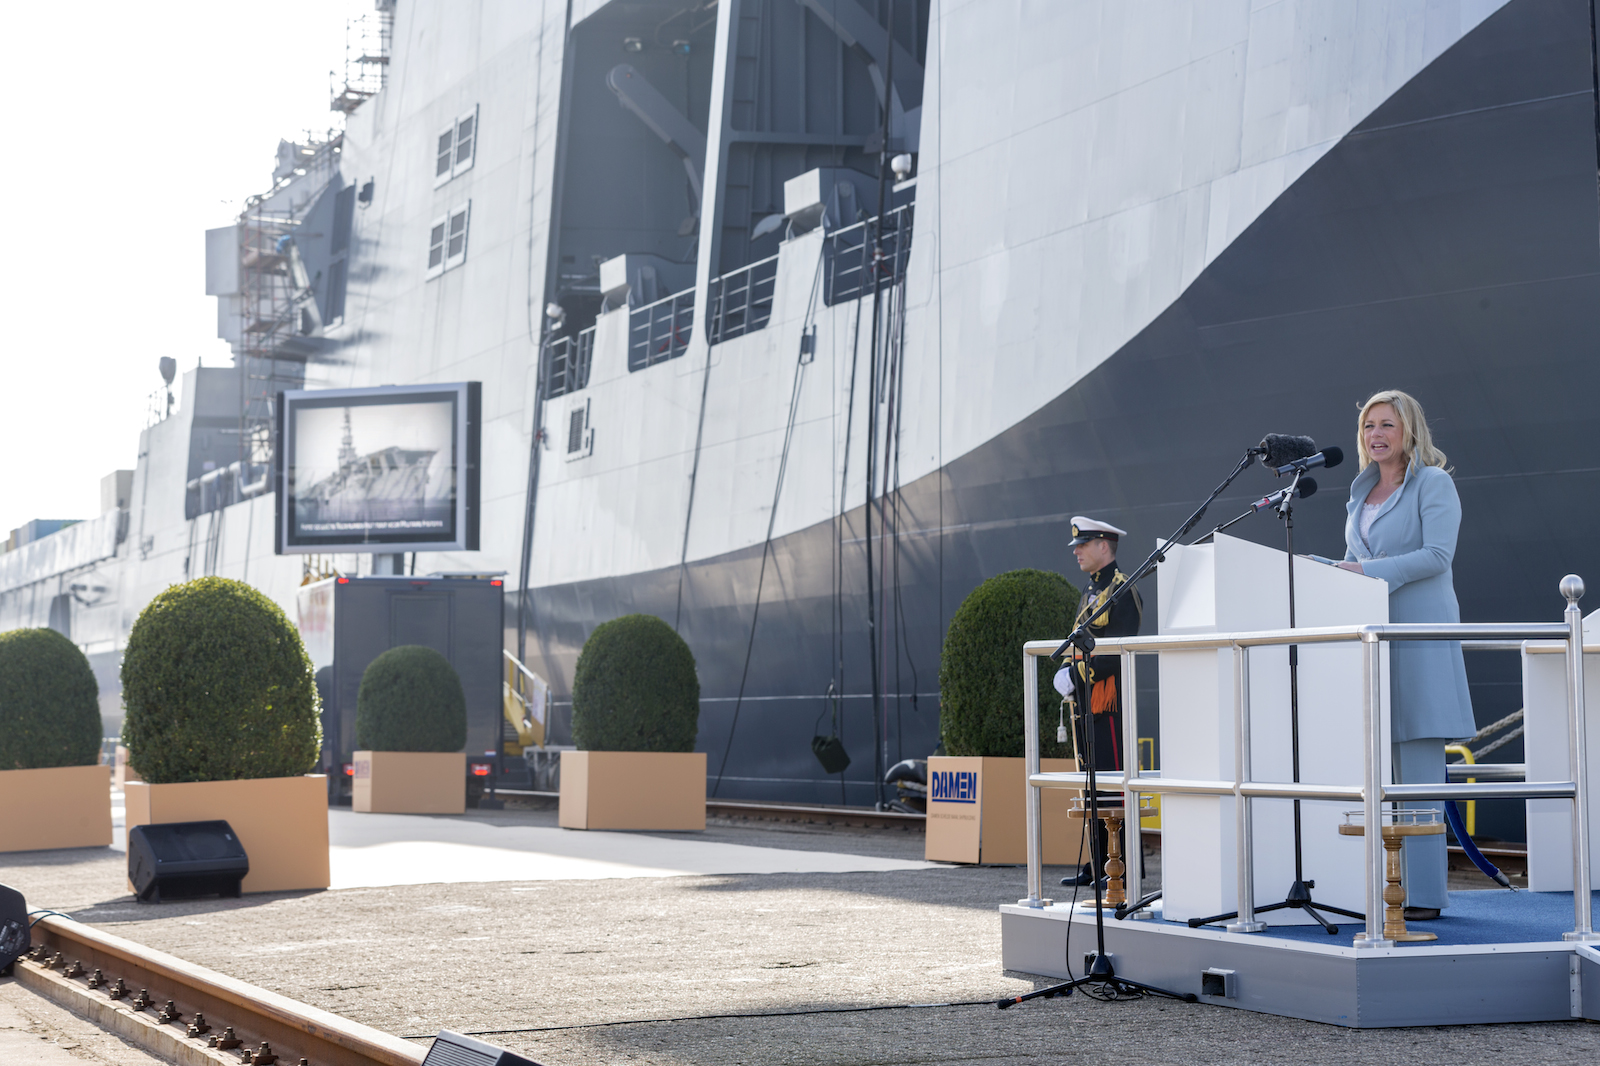 Minister commissions Dutch navy's biggest ship